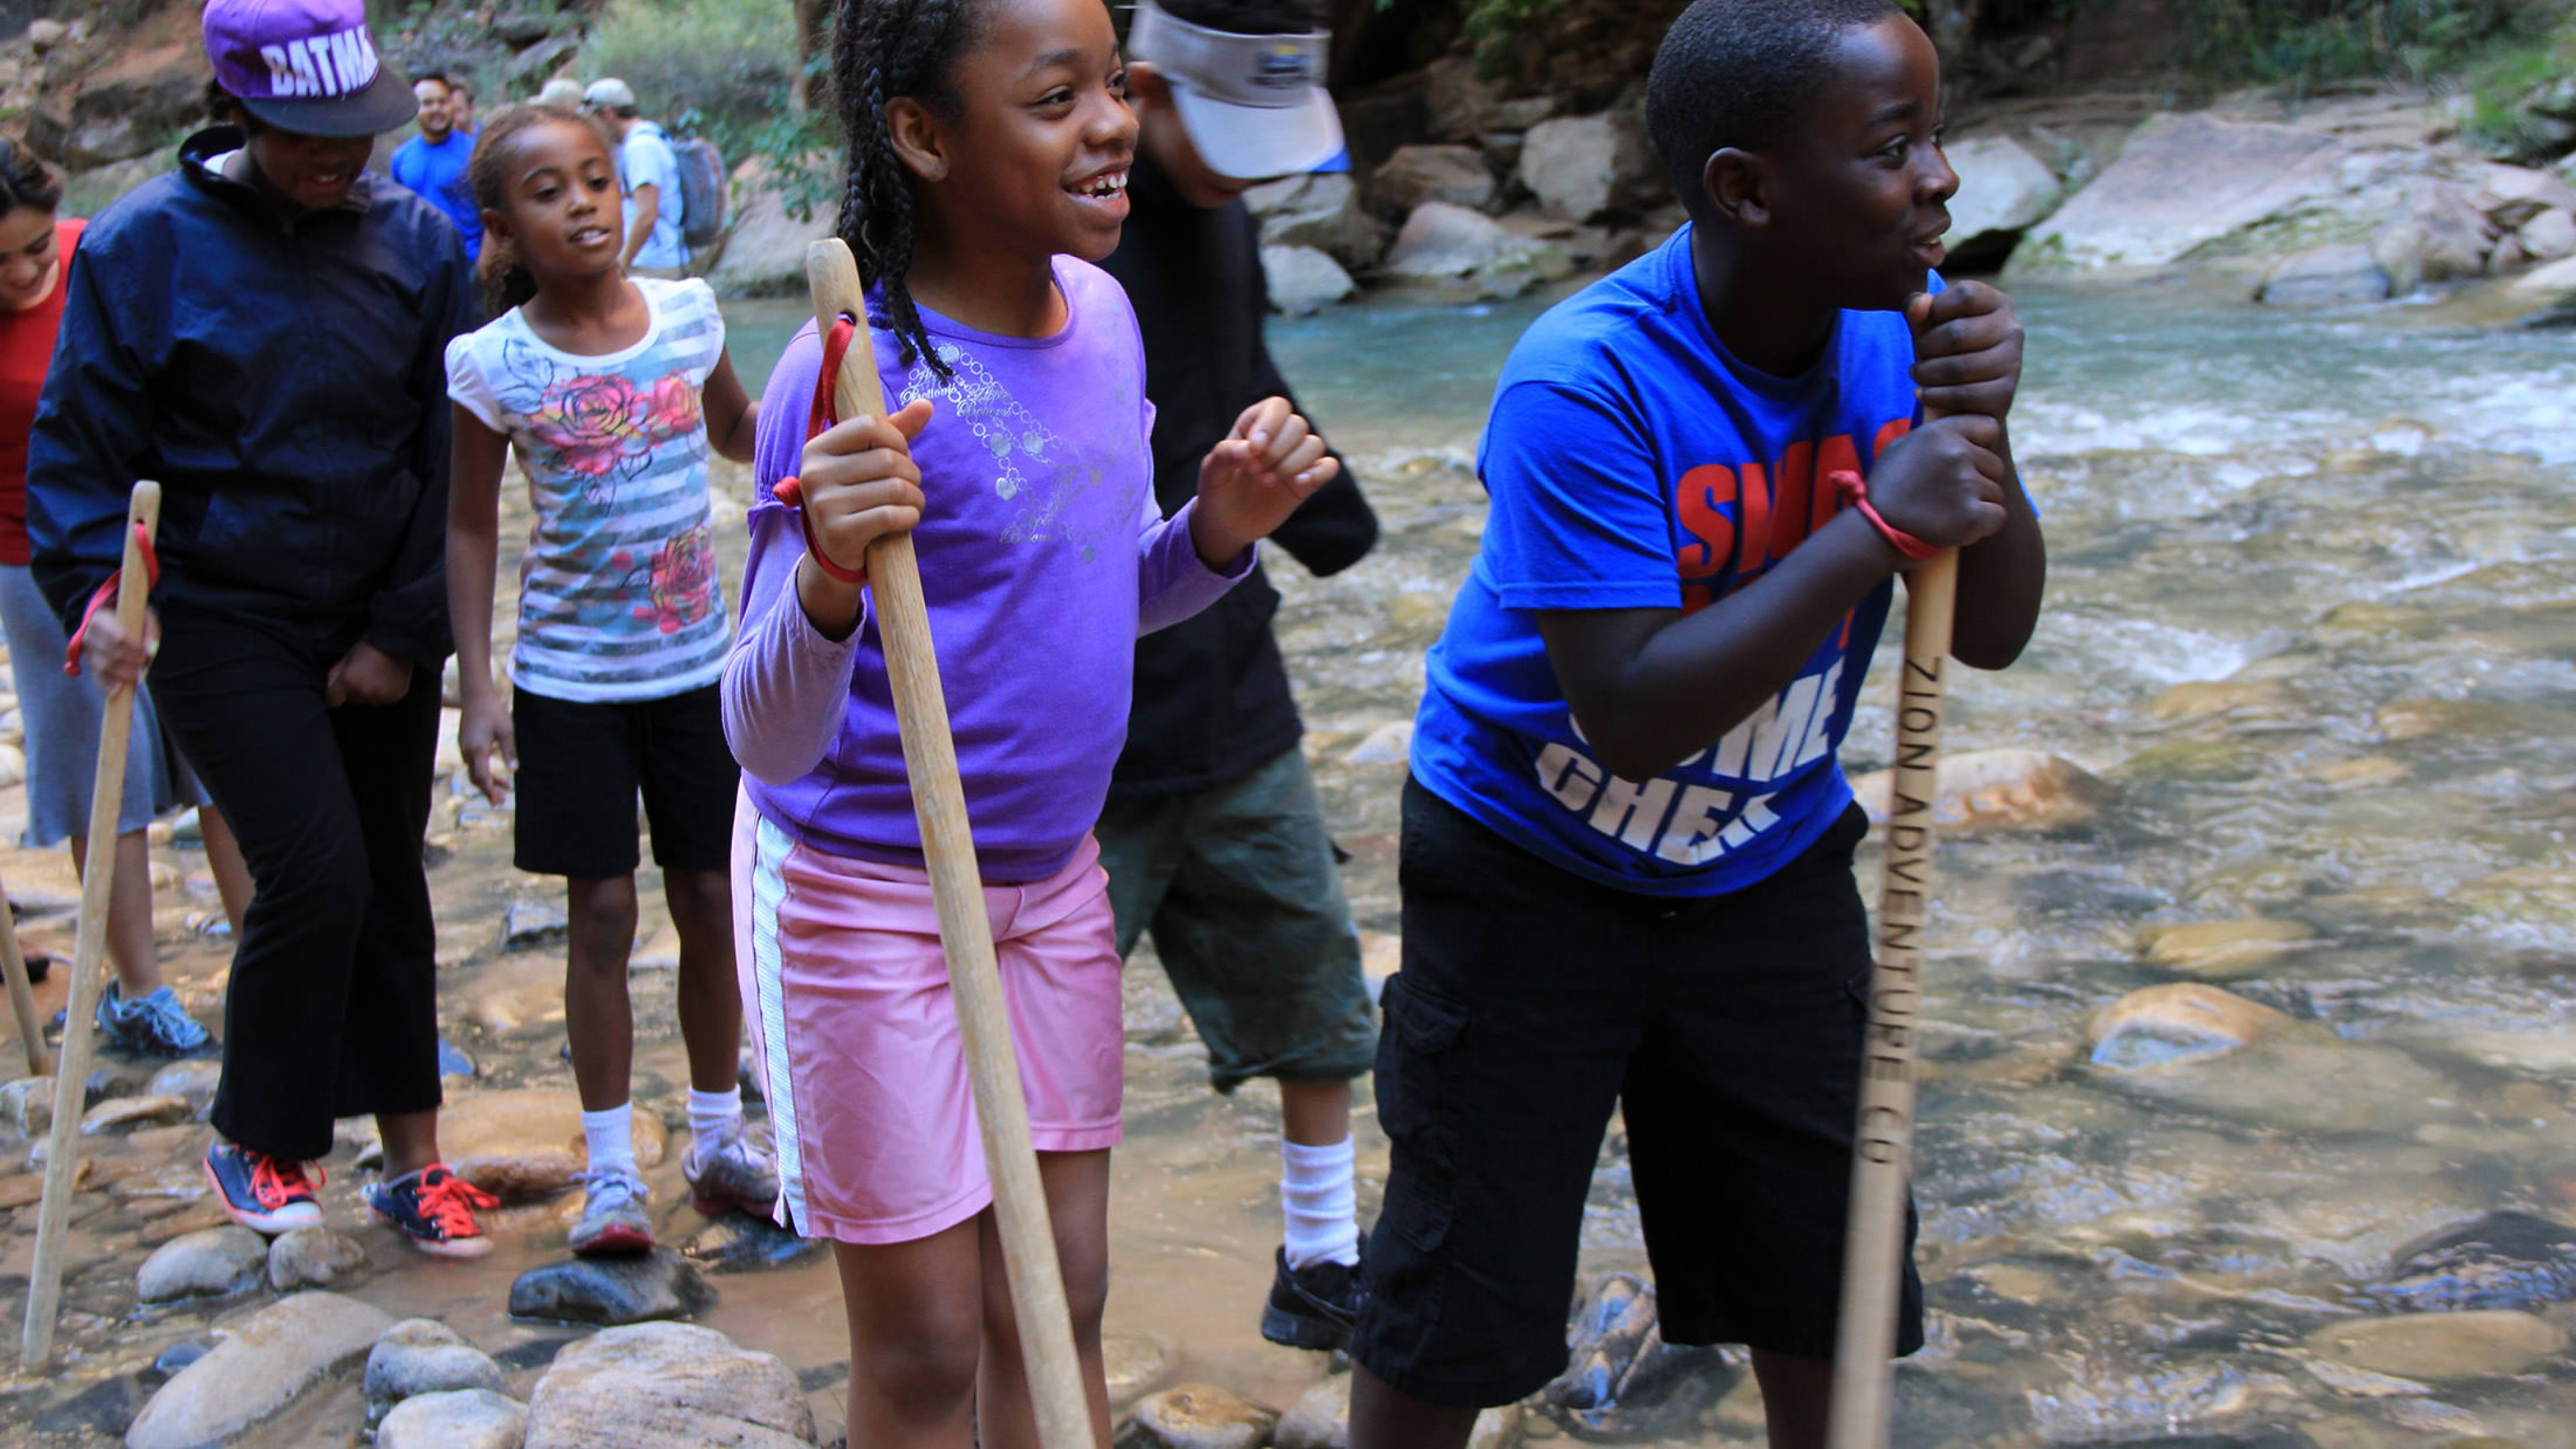 Kids taking part in a Concrete to Canyons program at Zion National Park